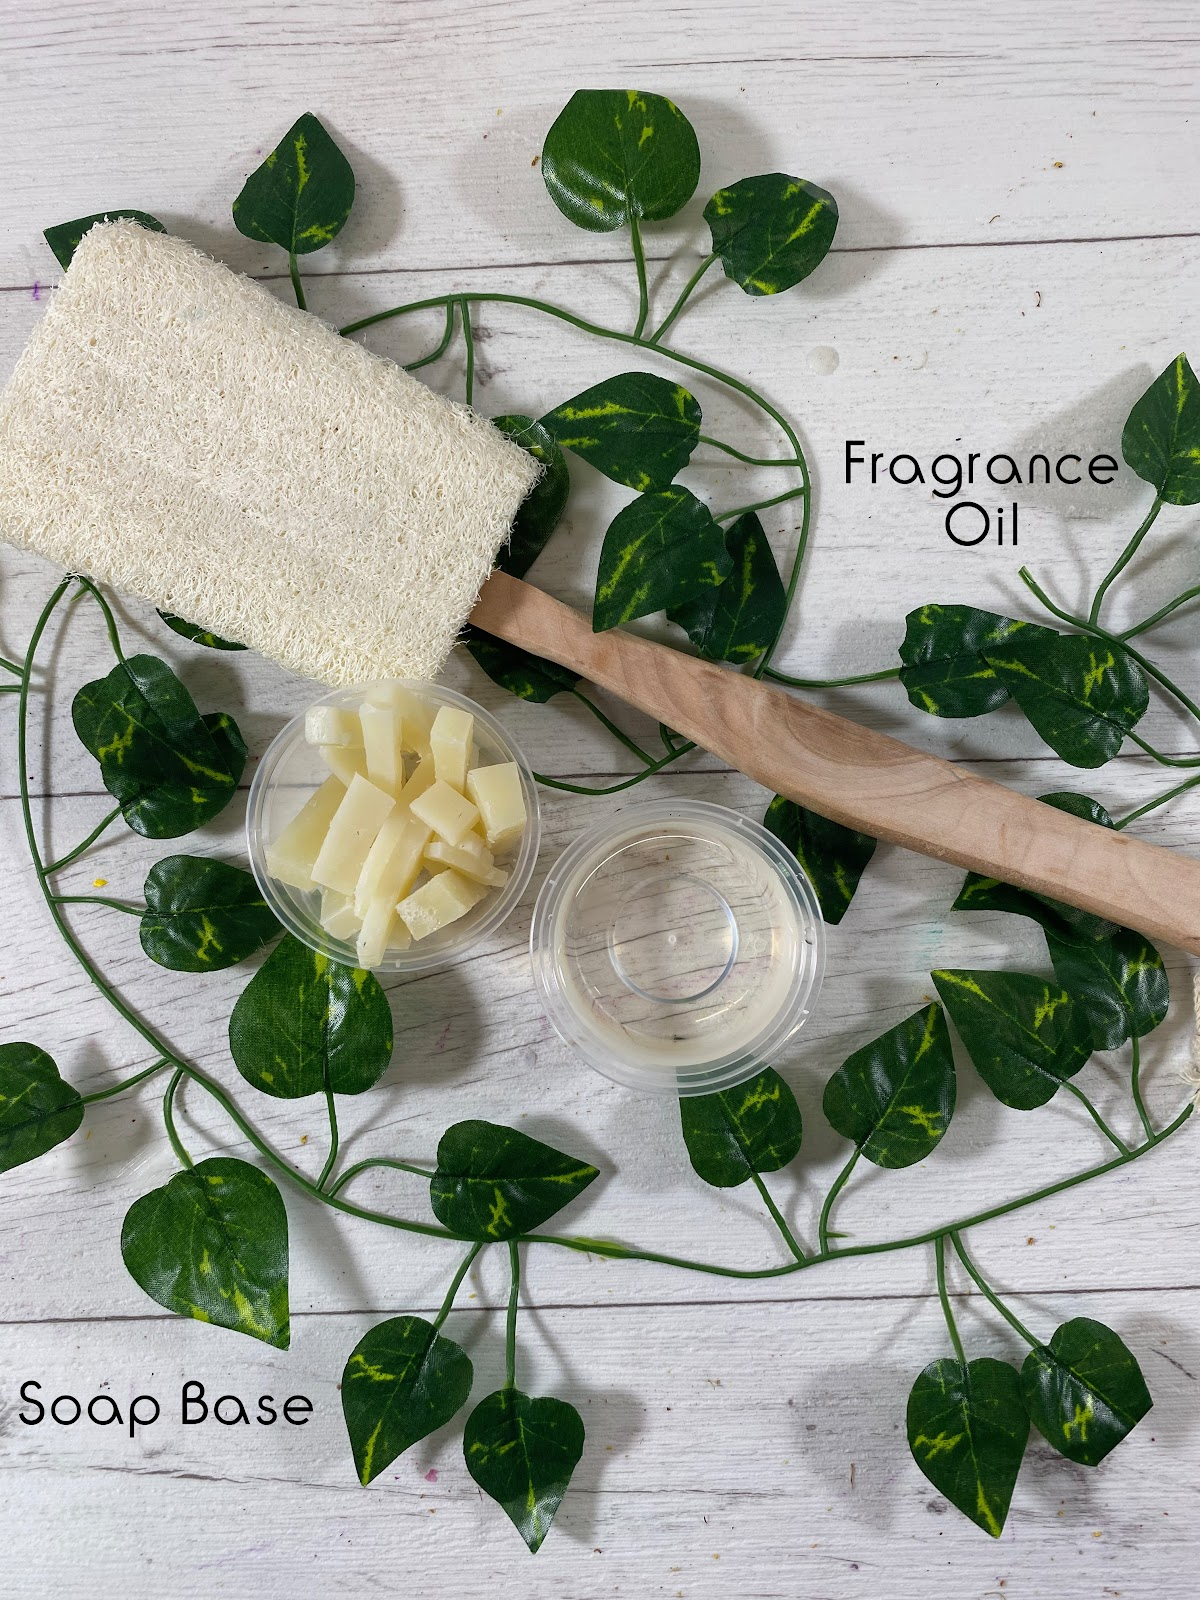 Soap base and fragrance oil to make hand soap